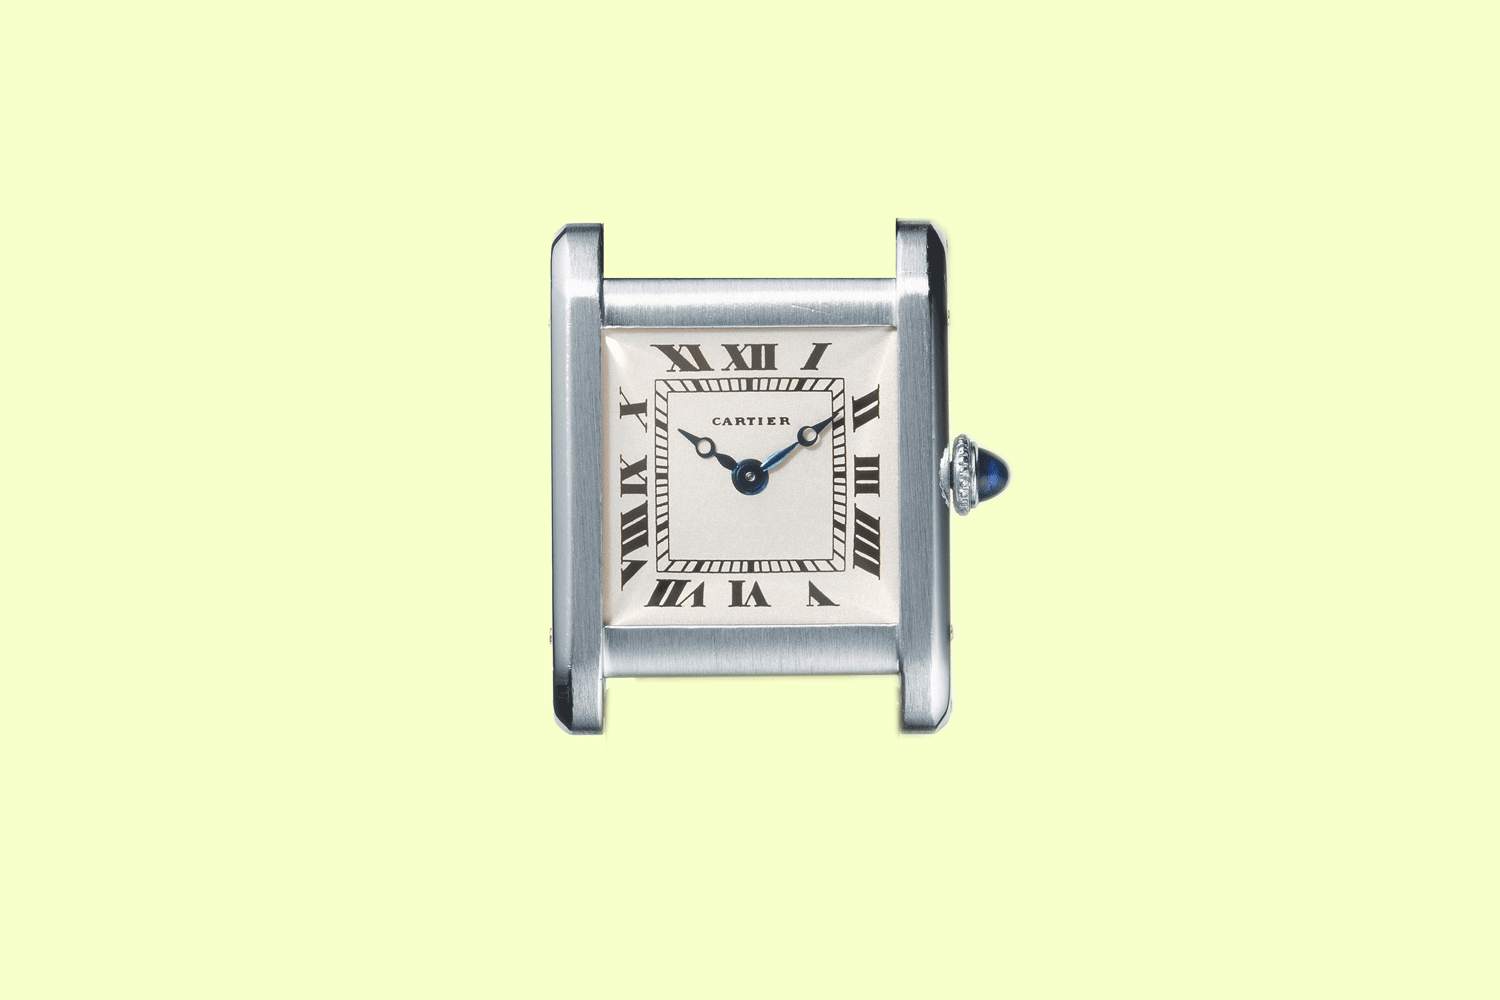 Conceived by Louis Cartier, the Tank wristwatch embodies the perfect balance between classicism and modernity. Here, function becomes form. The hours are written in Roman numerals, as in clocks of the 17th century, while the square-shaped dial is thoroughly contemporary. The Tank watch is timeless, and its success constant and universal. The biggest Hollywood stars, such as Rudolph Valentino and Gary Cooper, and the most elegant ones, like Catherine Deneuve, wore it as a statement of style and freedom. Tank wristwatch Cartier Paris, 1920 Platinum, gold, One sapphire cabochon, Leather strap. Dimensions of the case: 2.96 x 2.30 cm. © Cartier